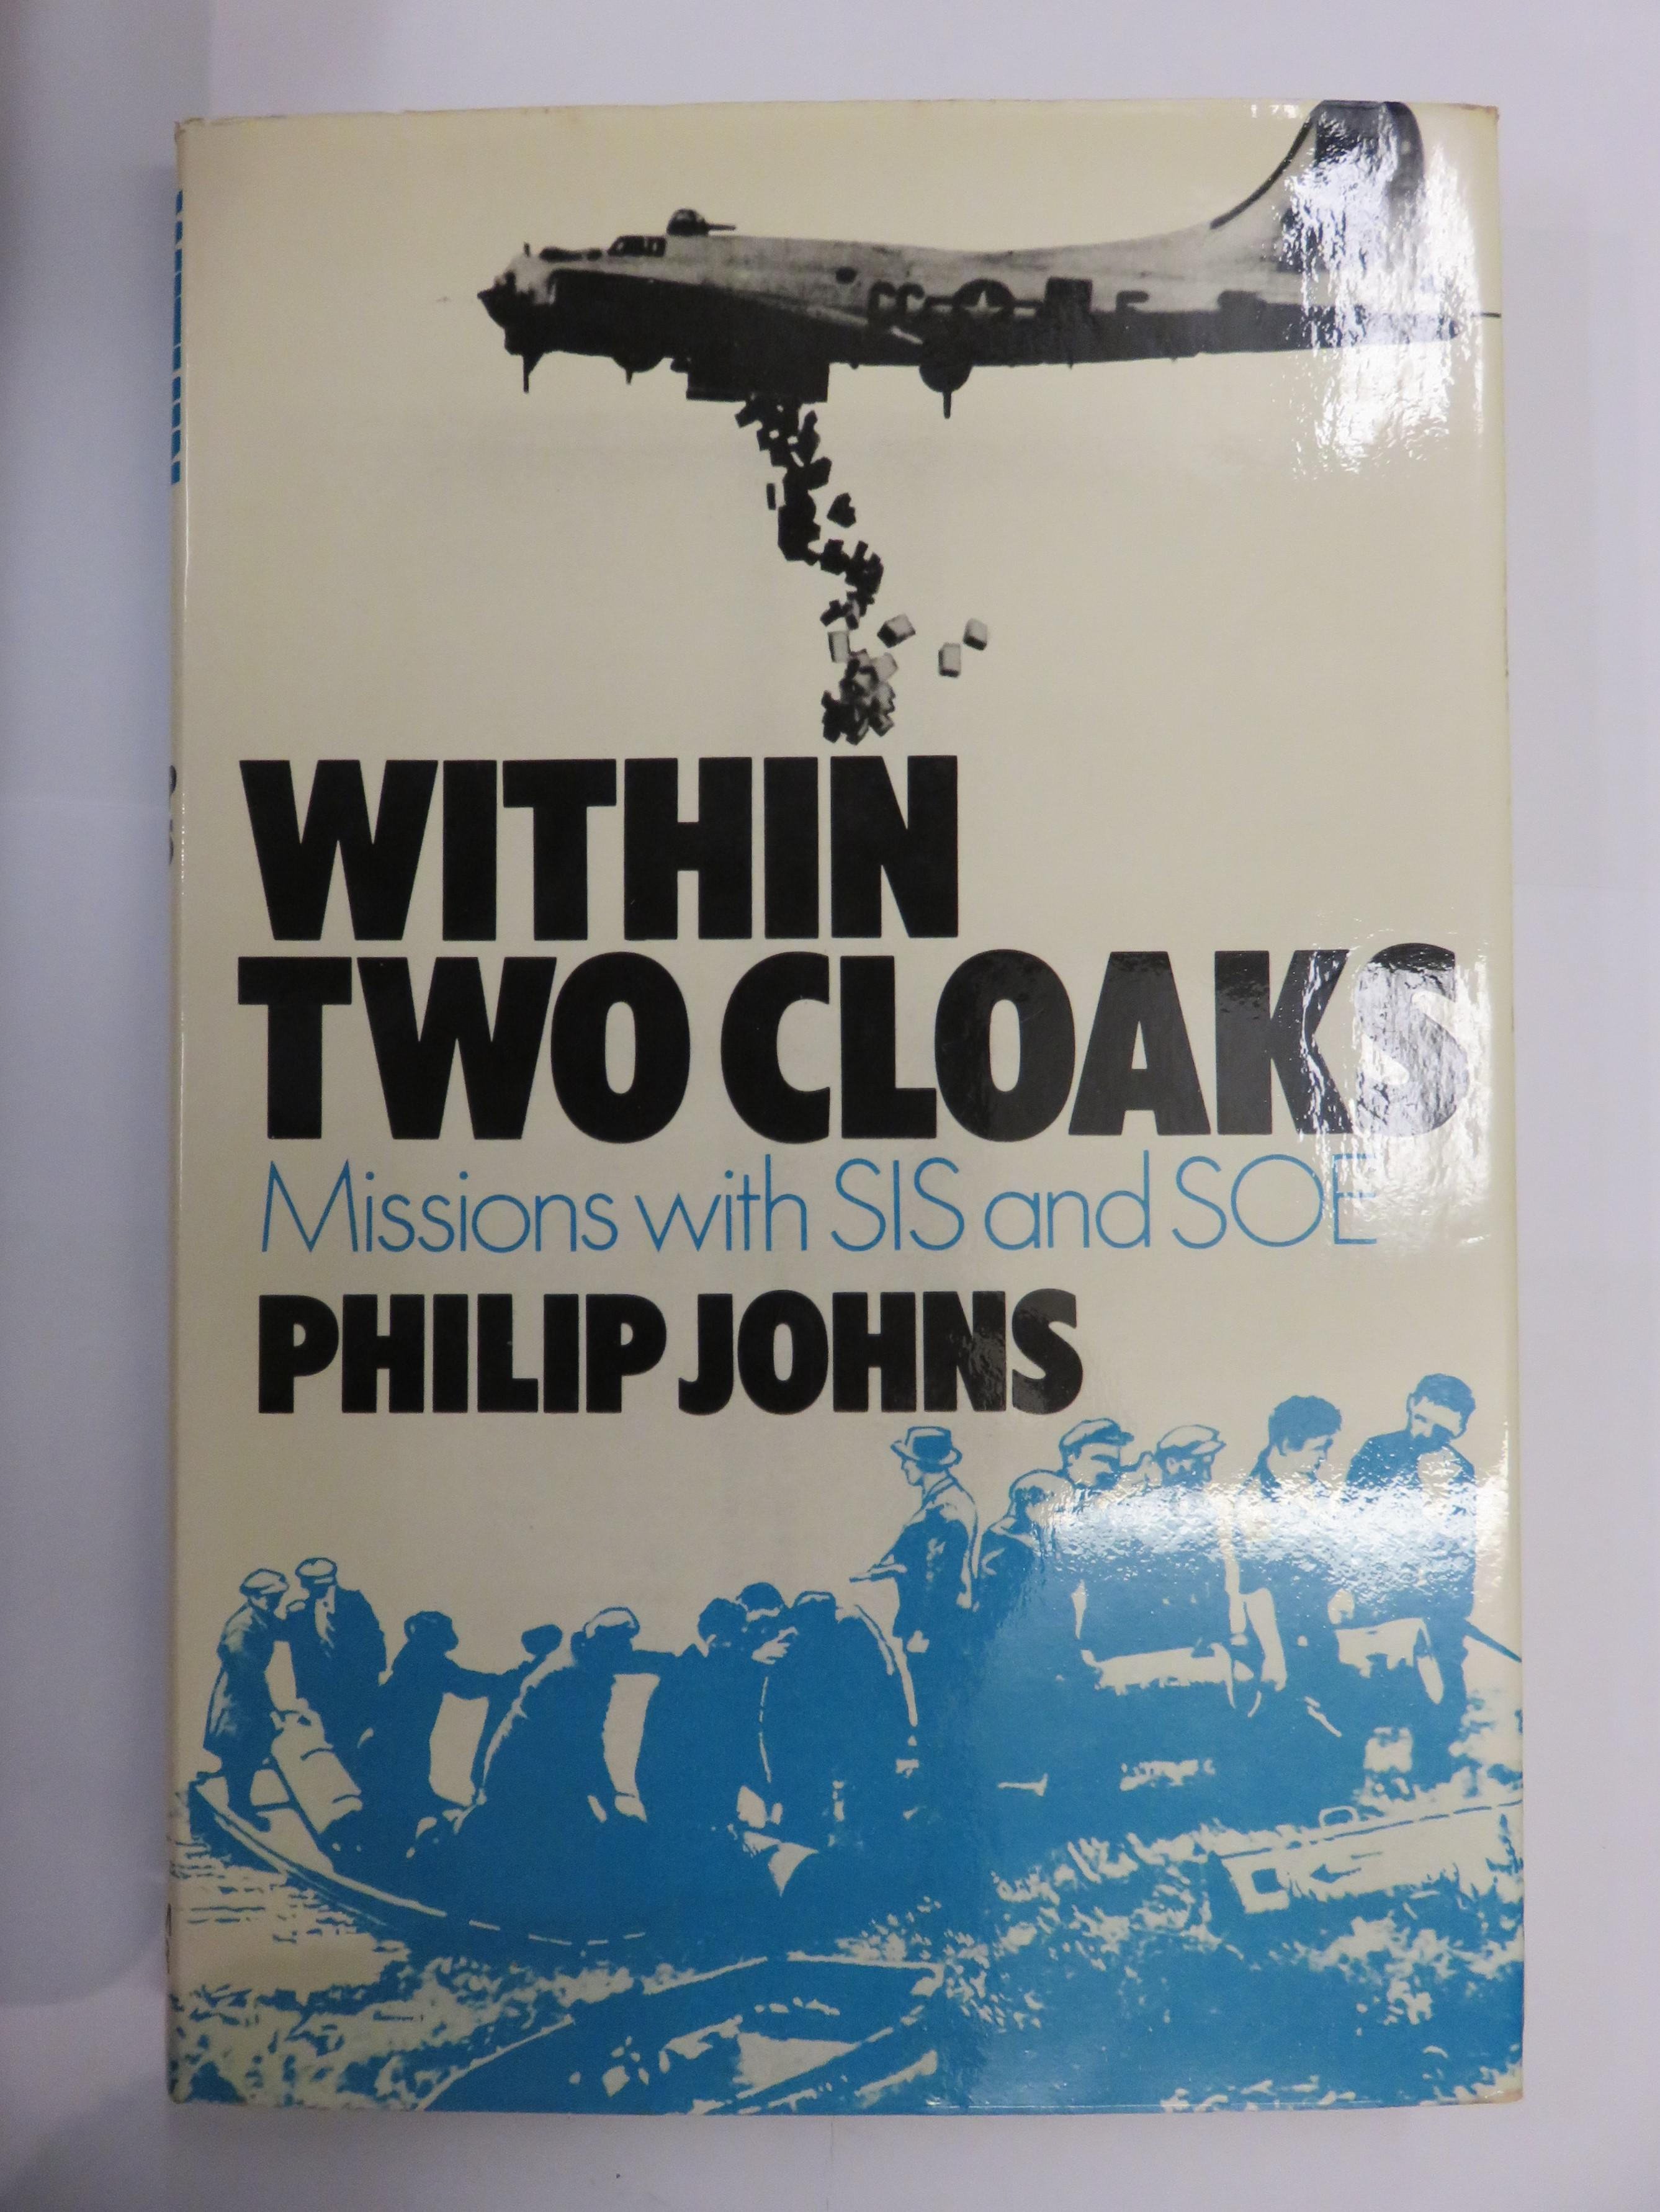 Within Two Cloaks